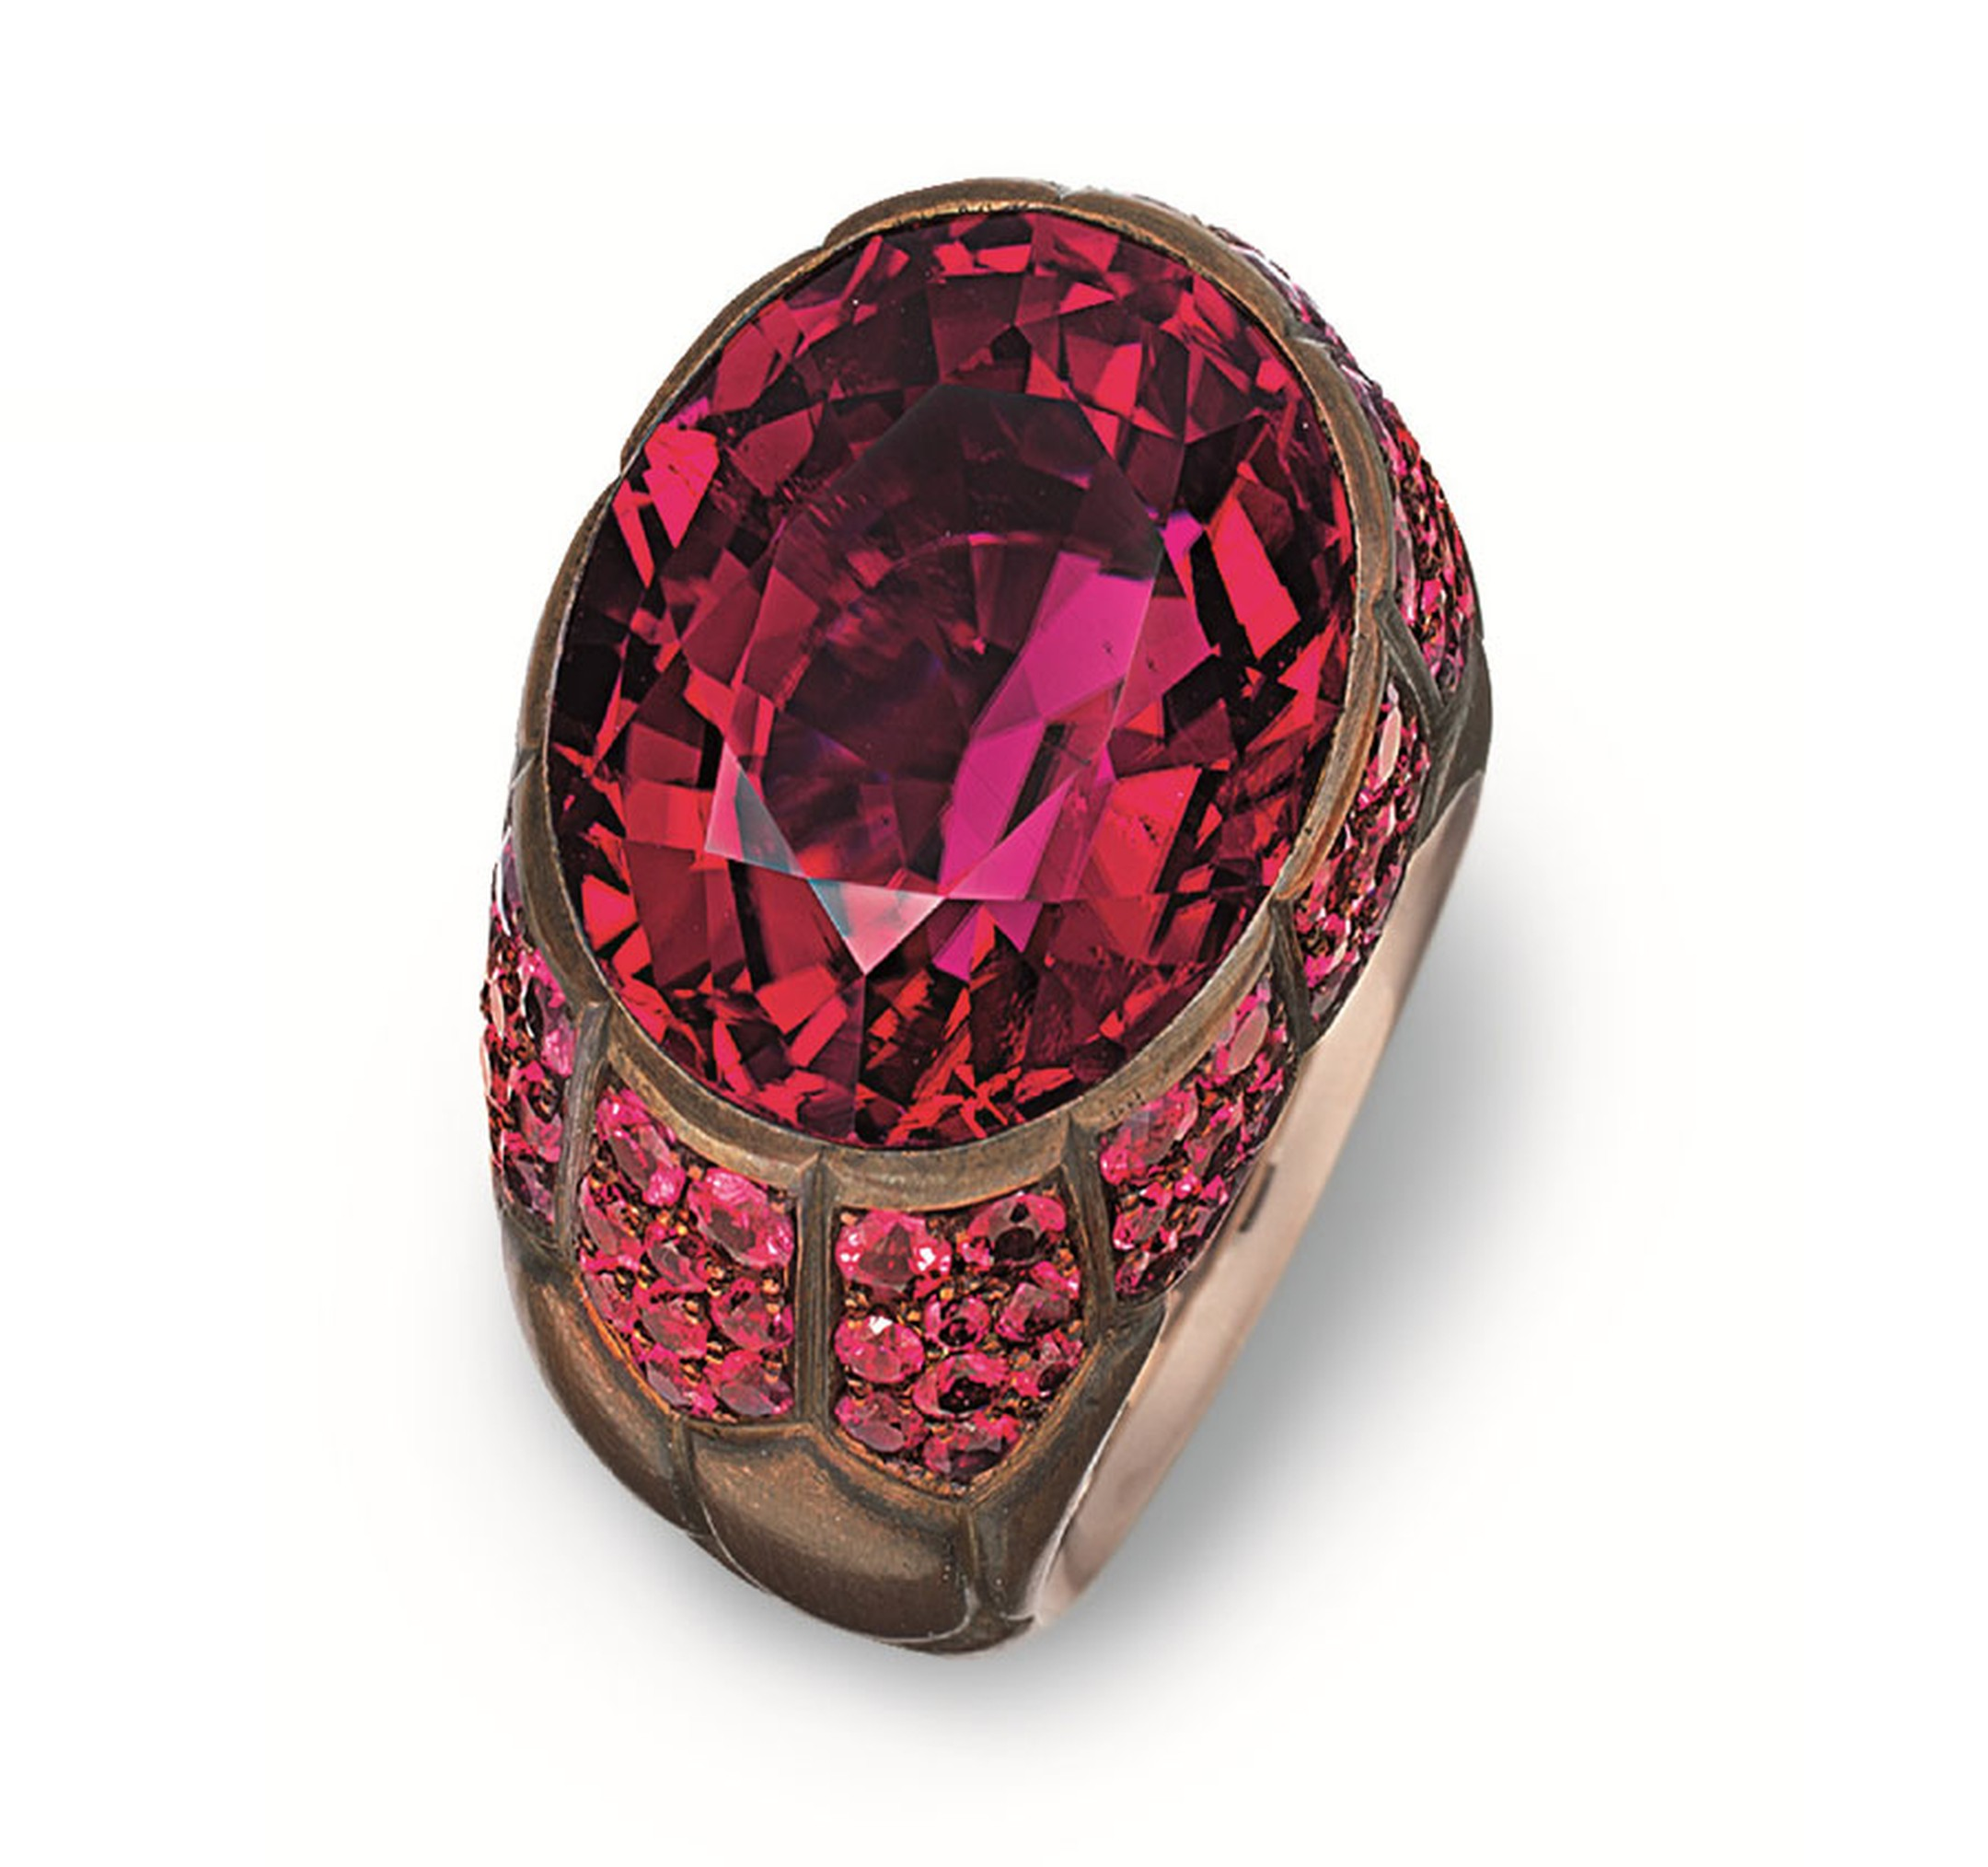 MPL-2013-Hemmerle-Brown-patinated-copper-white-gold-Rubellite-spinels-ring.jpg